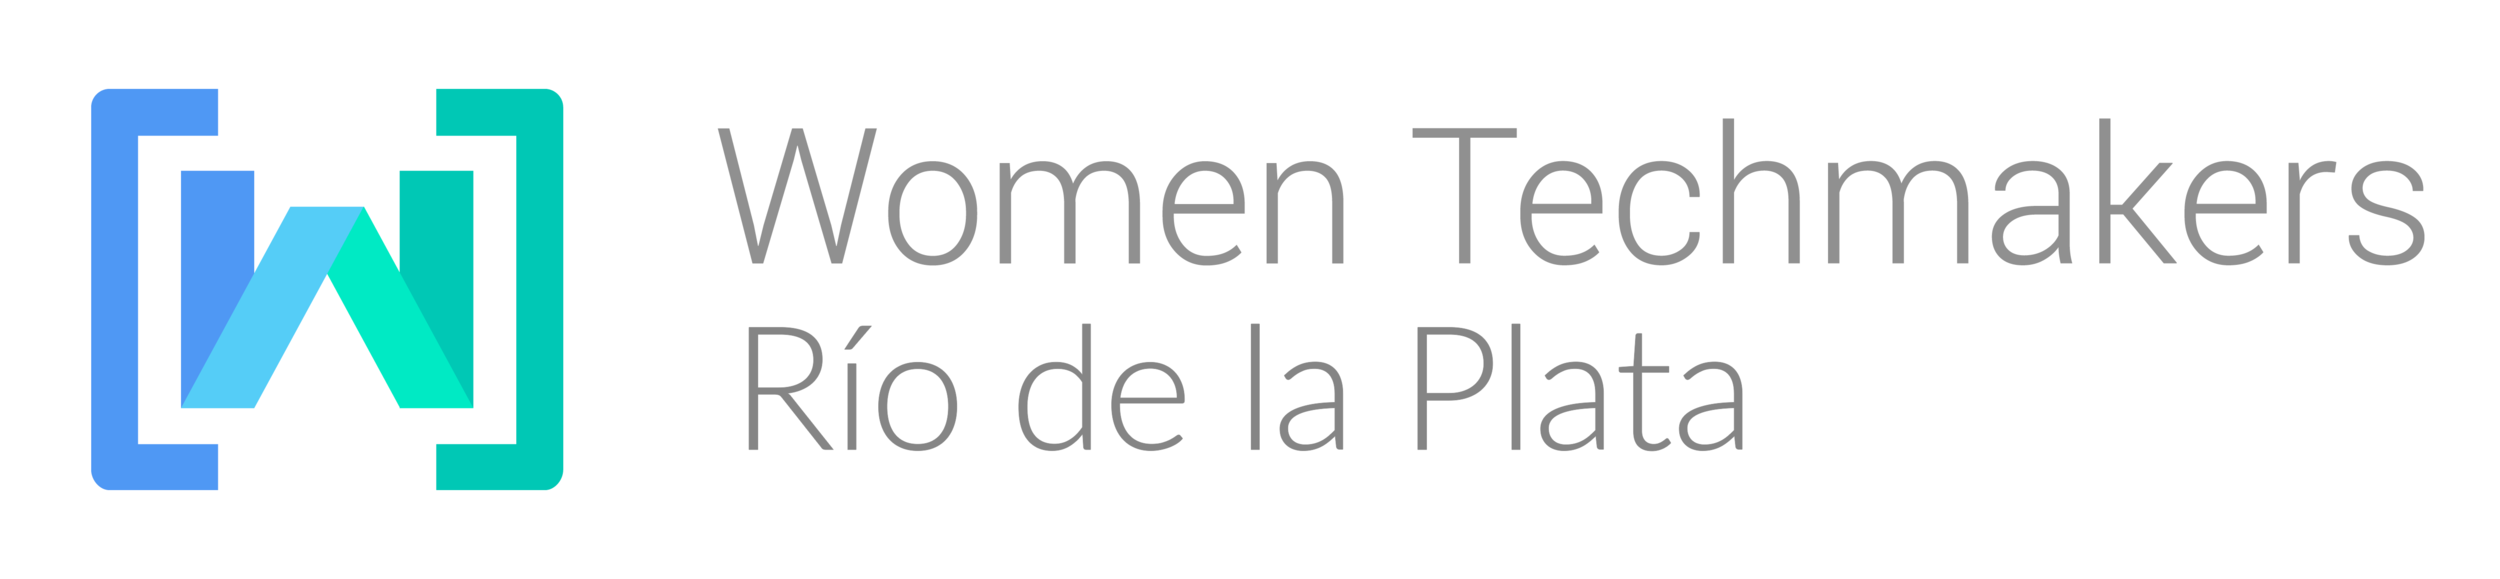 Women techmakers.png